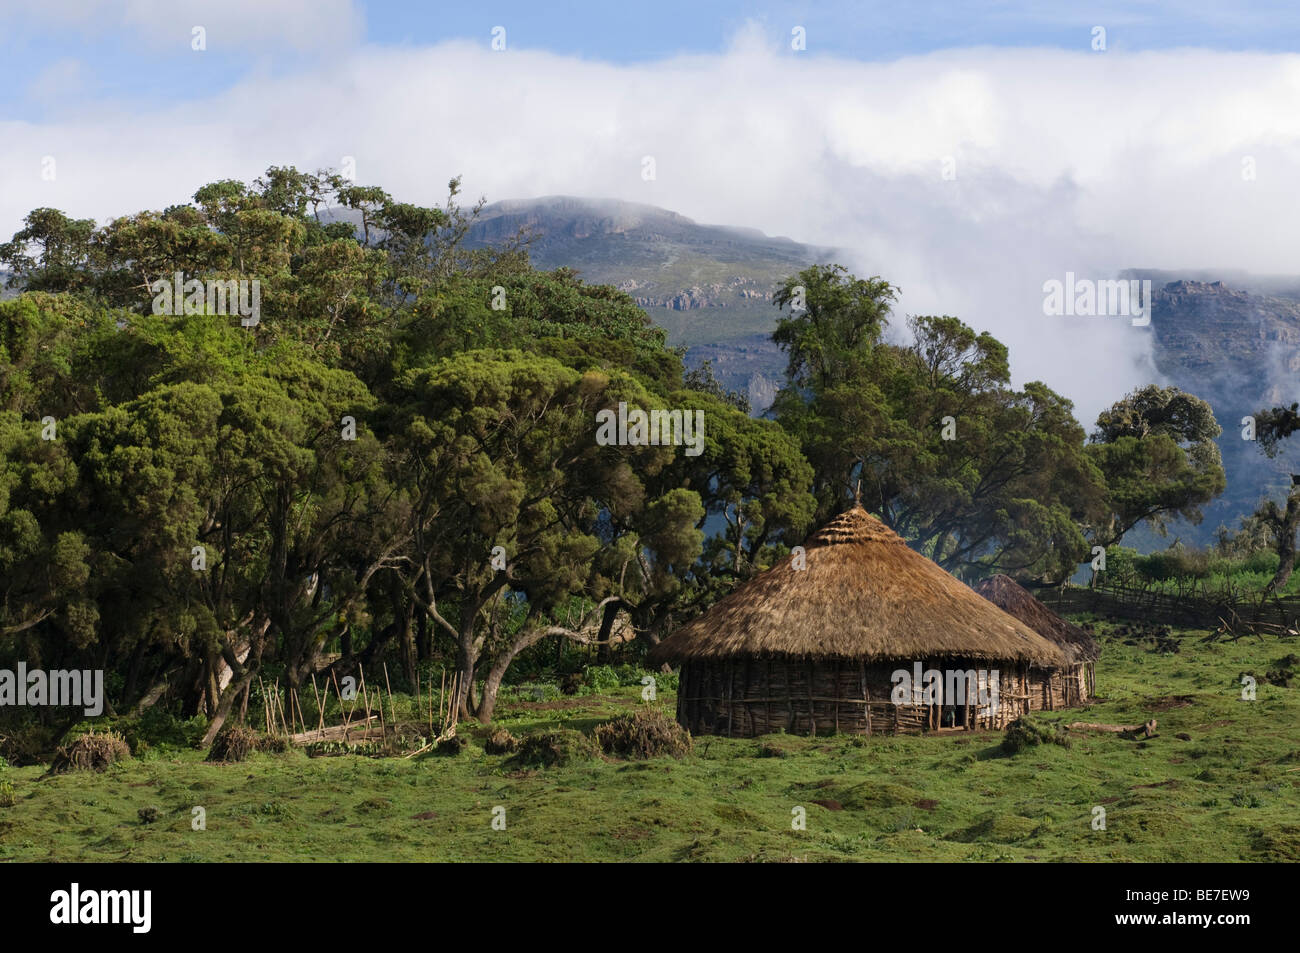 hut in Harenna forest, Bale Mountains National Park, Ethiopia - Stock Image